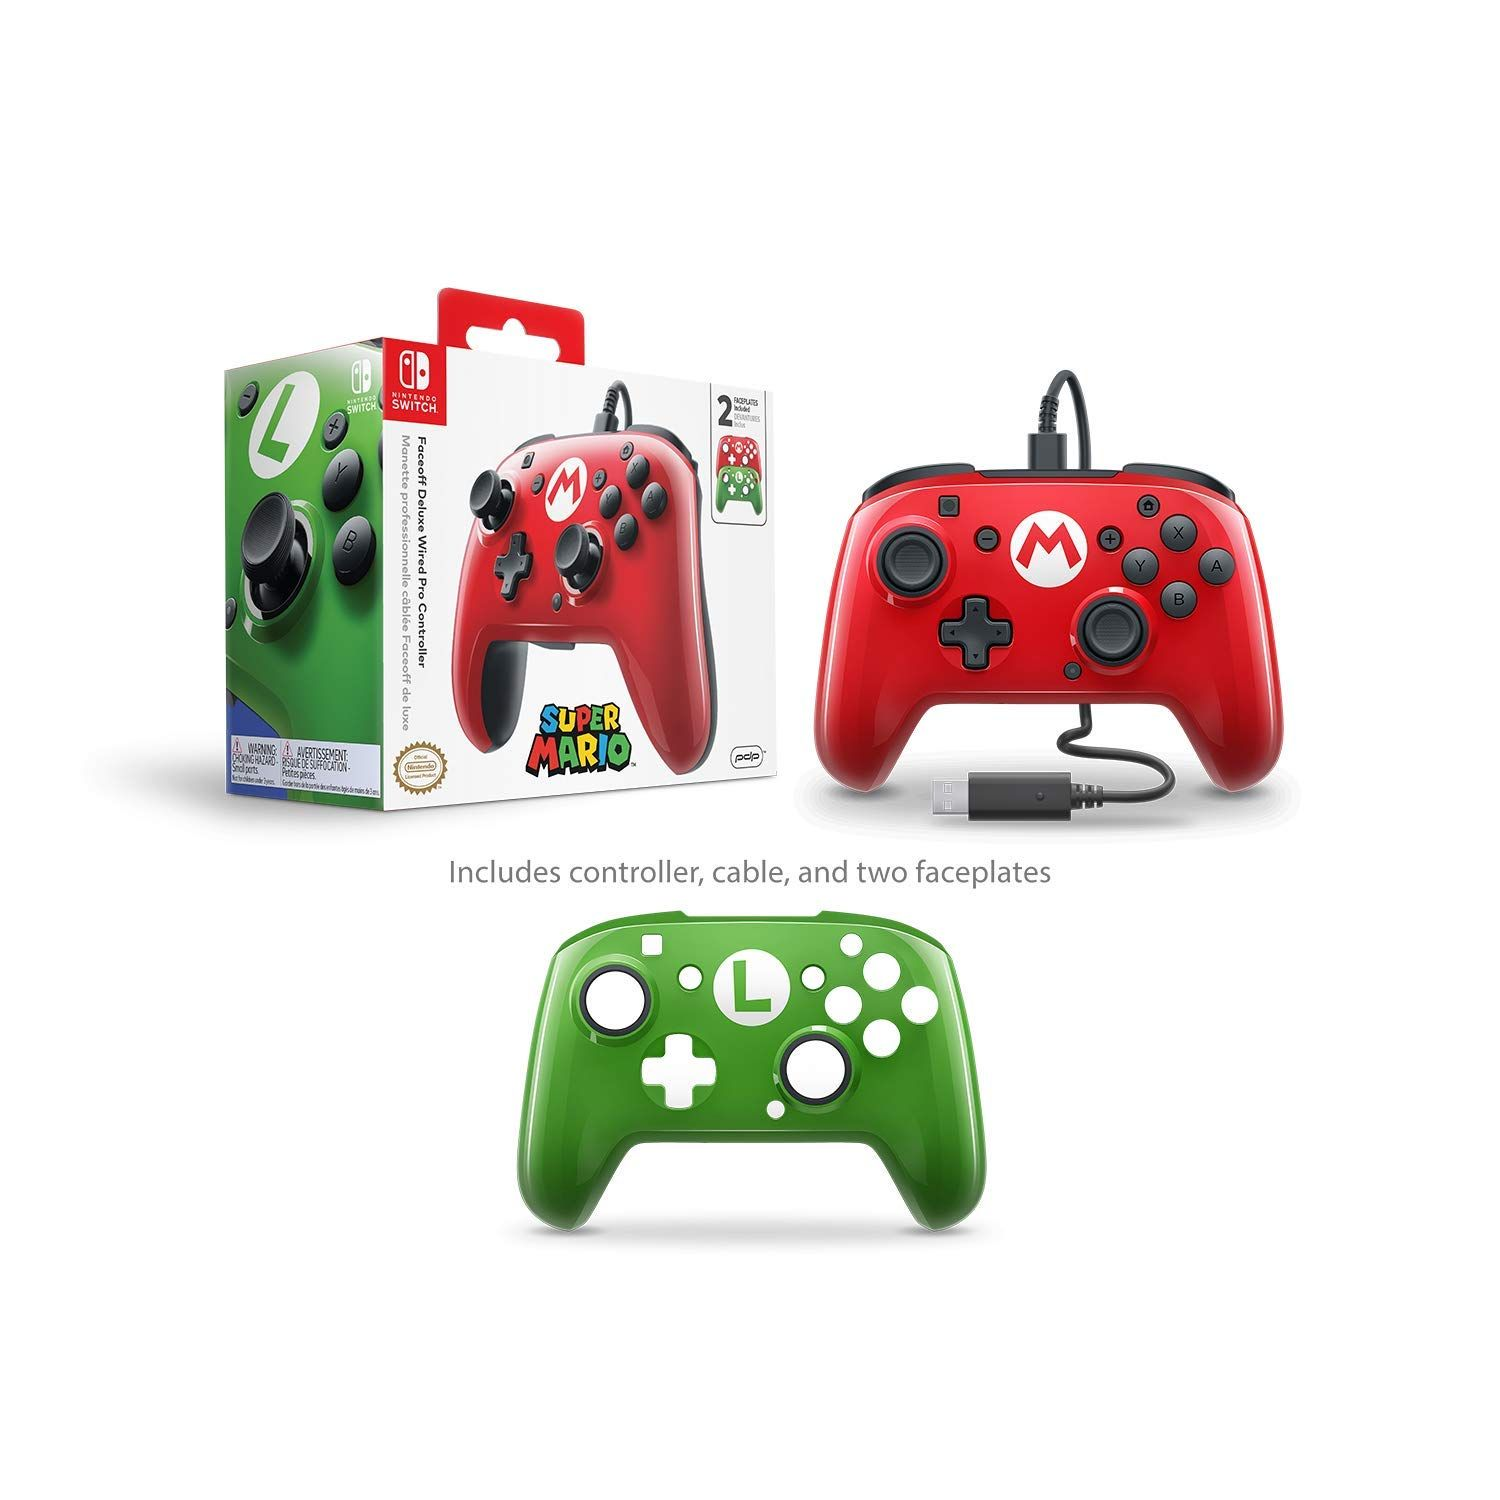 Pdp Nintendo Switch Faceoff Wired Pro Controller With 2 Super Mario Controller Faceplates Faceoff Wired Nintendo Switch Nintendo Switch Super Mario Nintendo